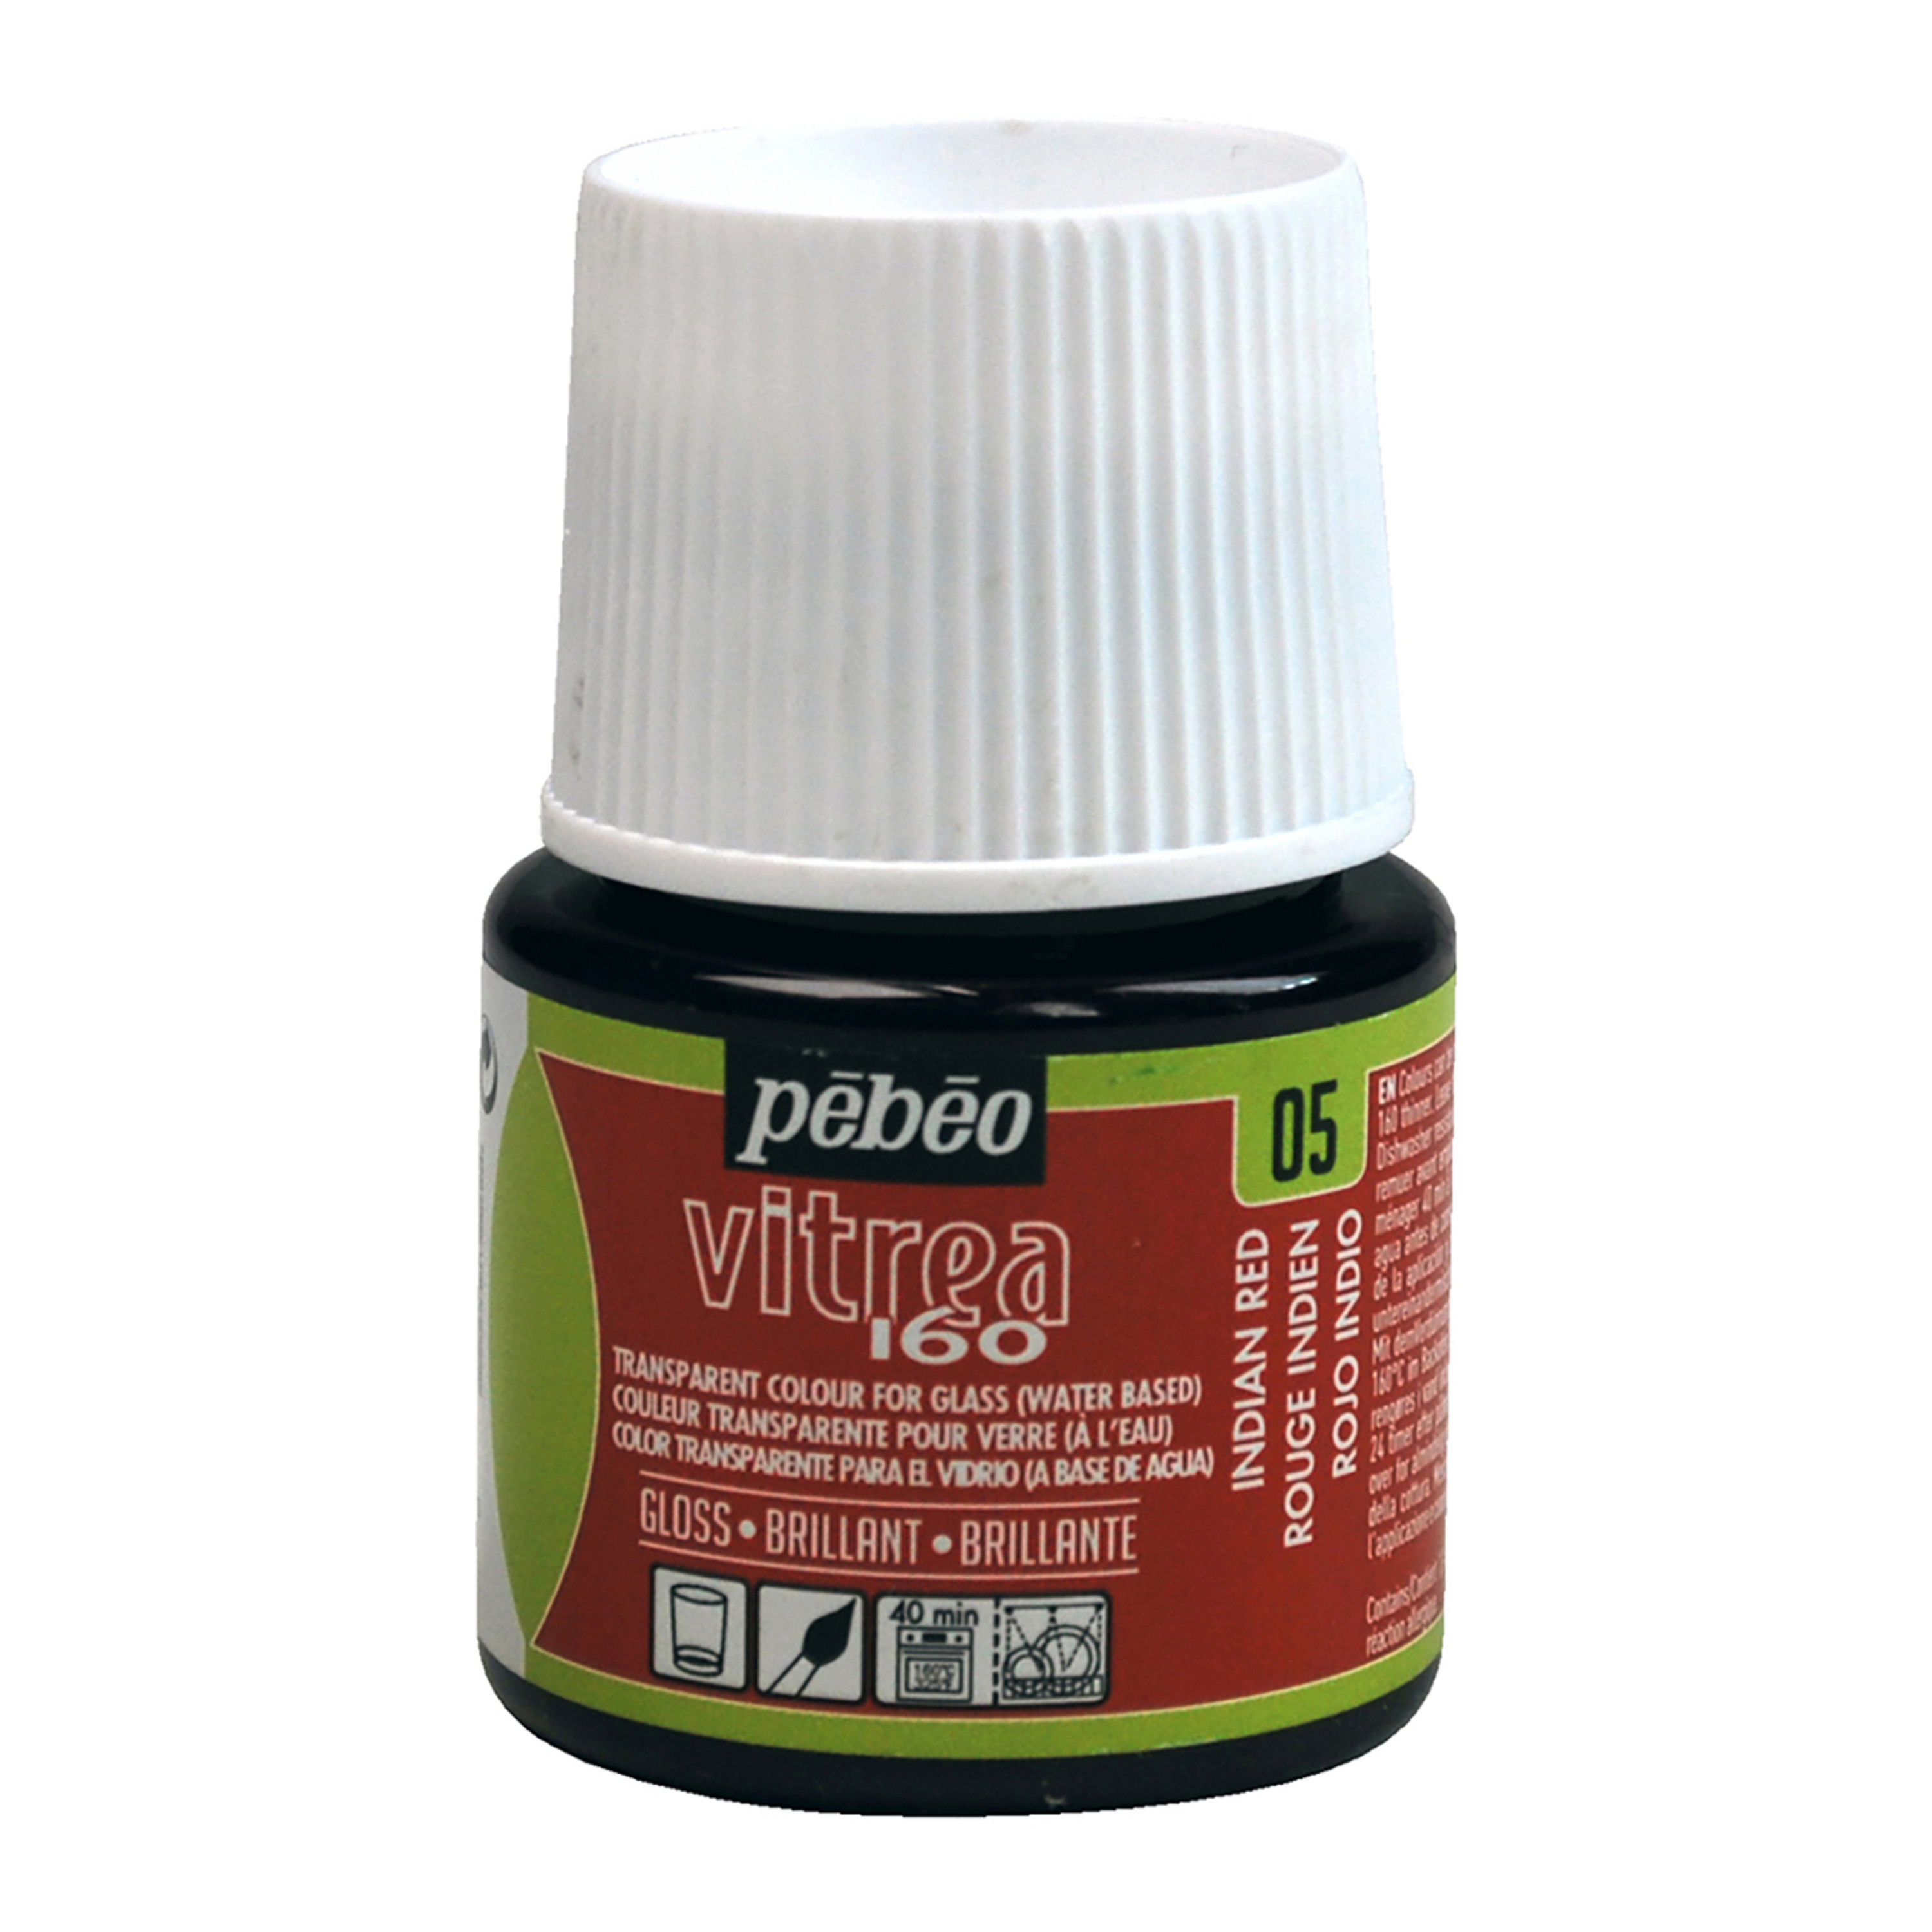 Pebeo Vitrea 160 Glass Paint, 45ml, Glossy, Indian Red